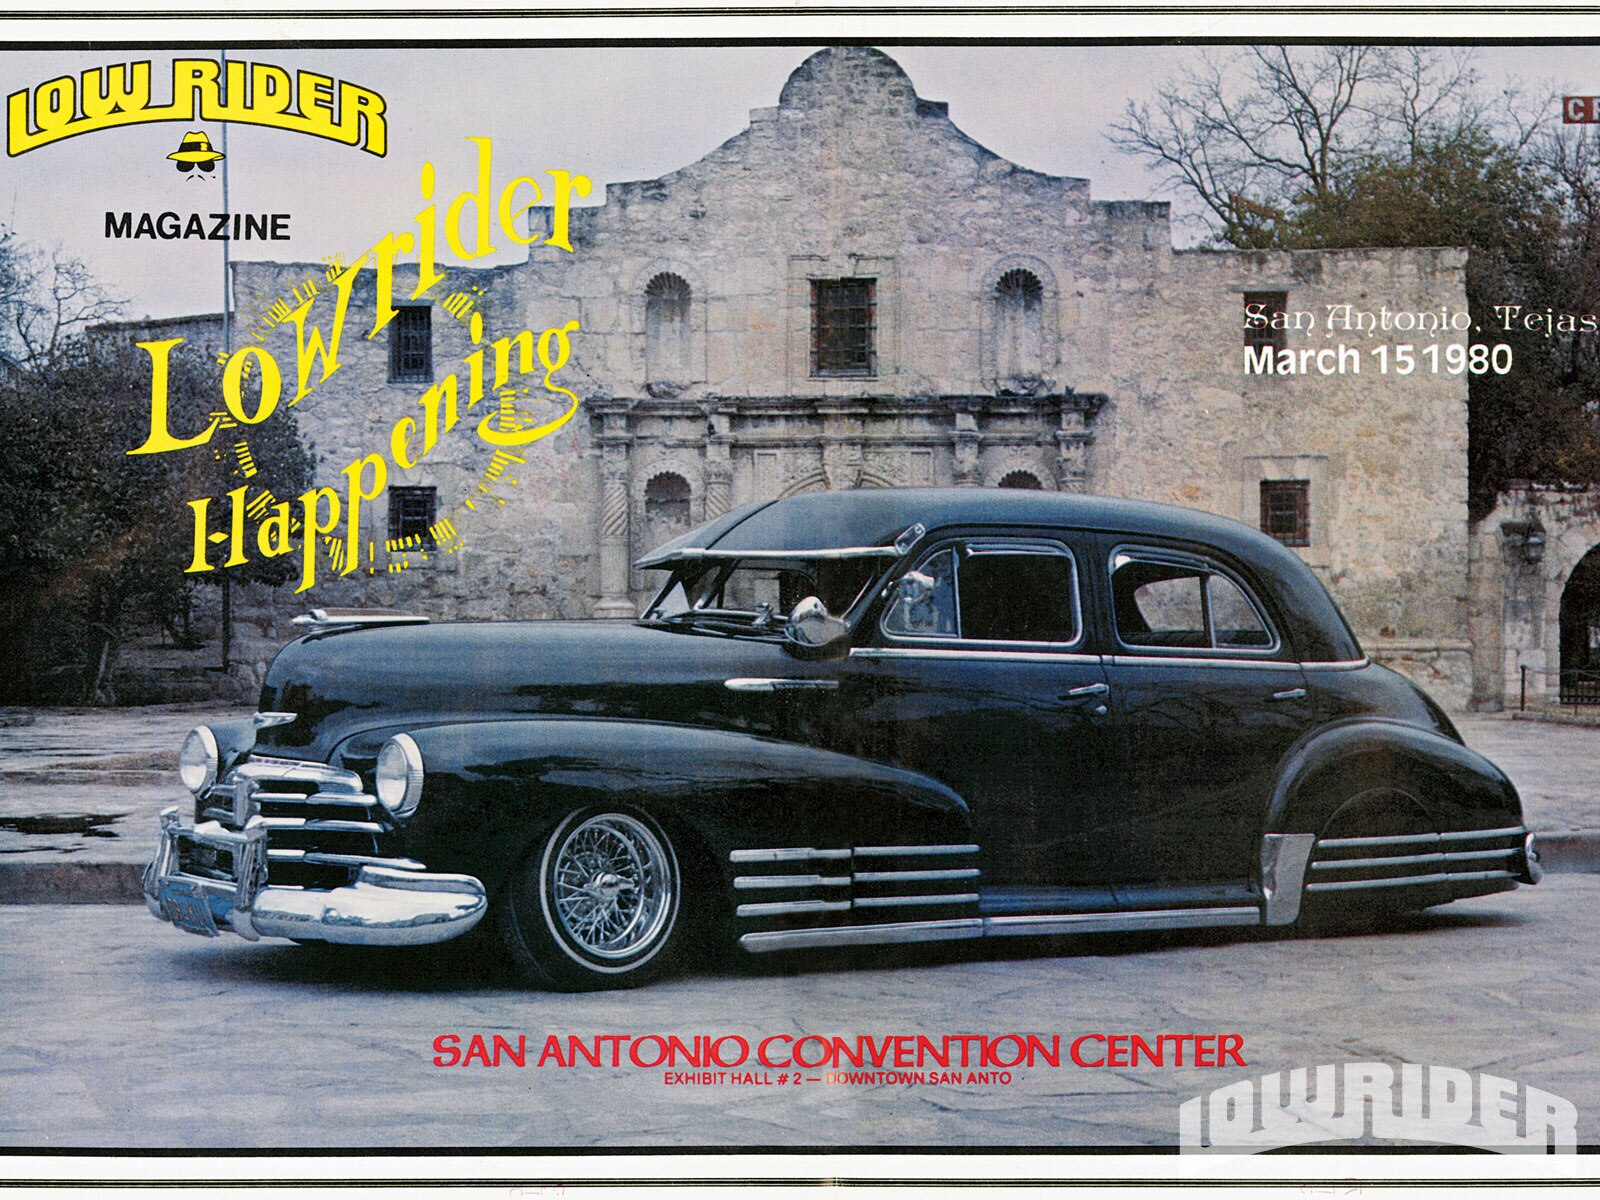 1202-lrmp-91-o-35-years-in-the-life-lowrider-magazine-79-801